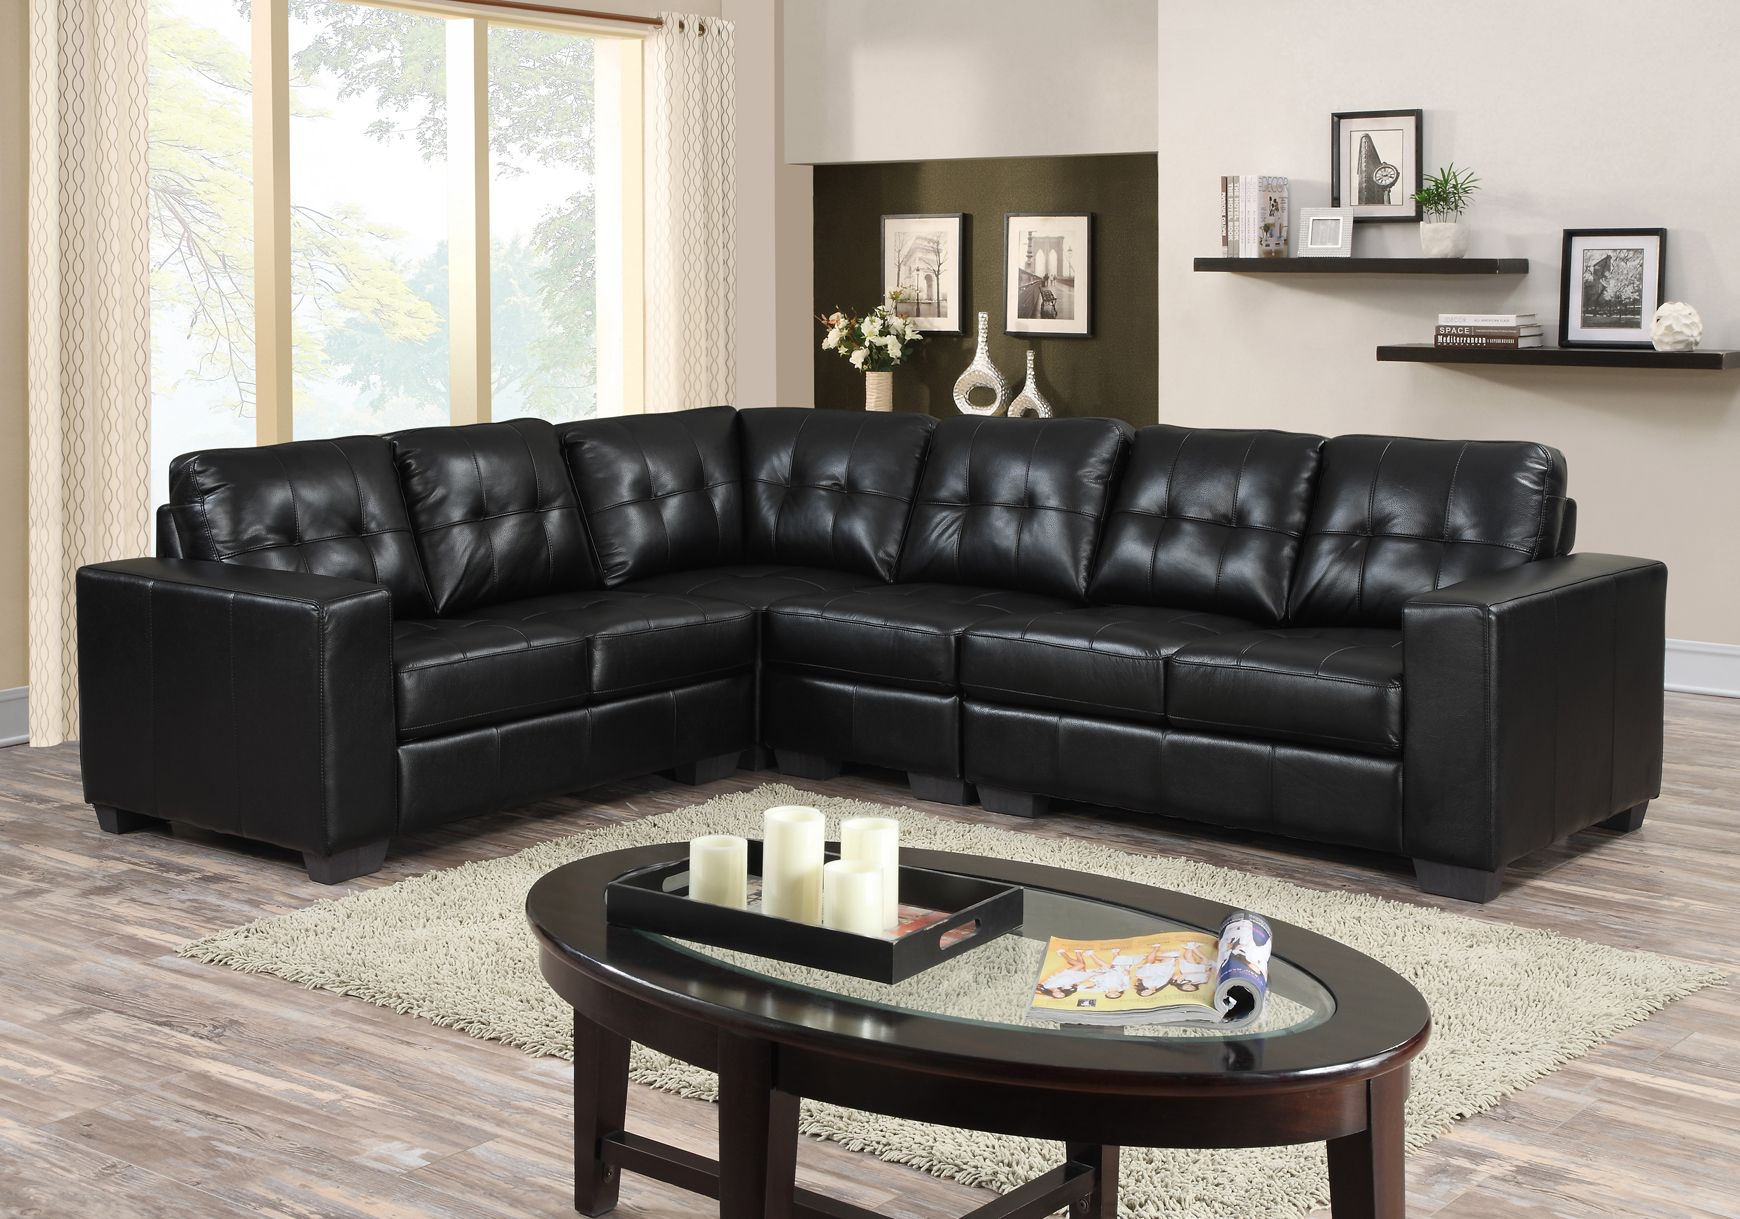 Idea By Expo Furniture Gallery On Living Room Sectional